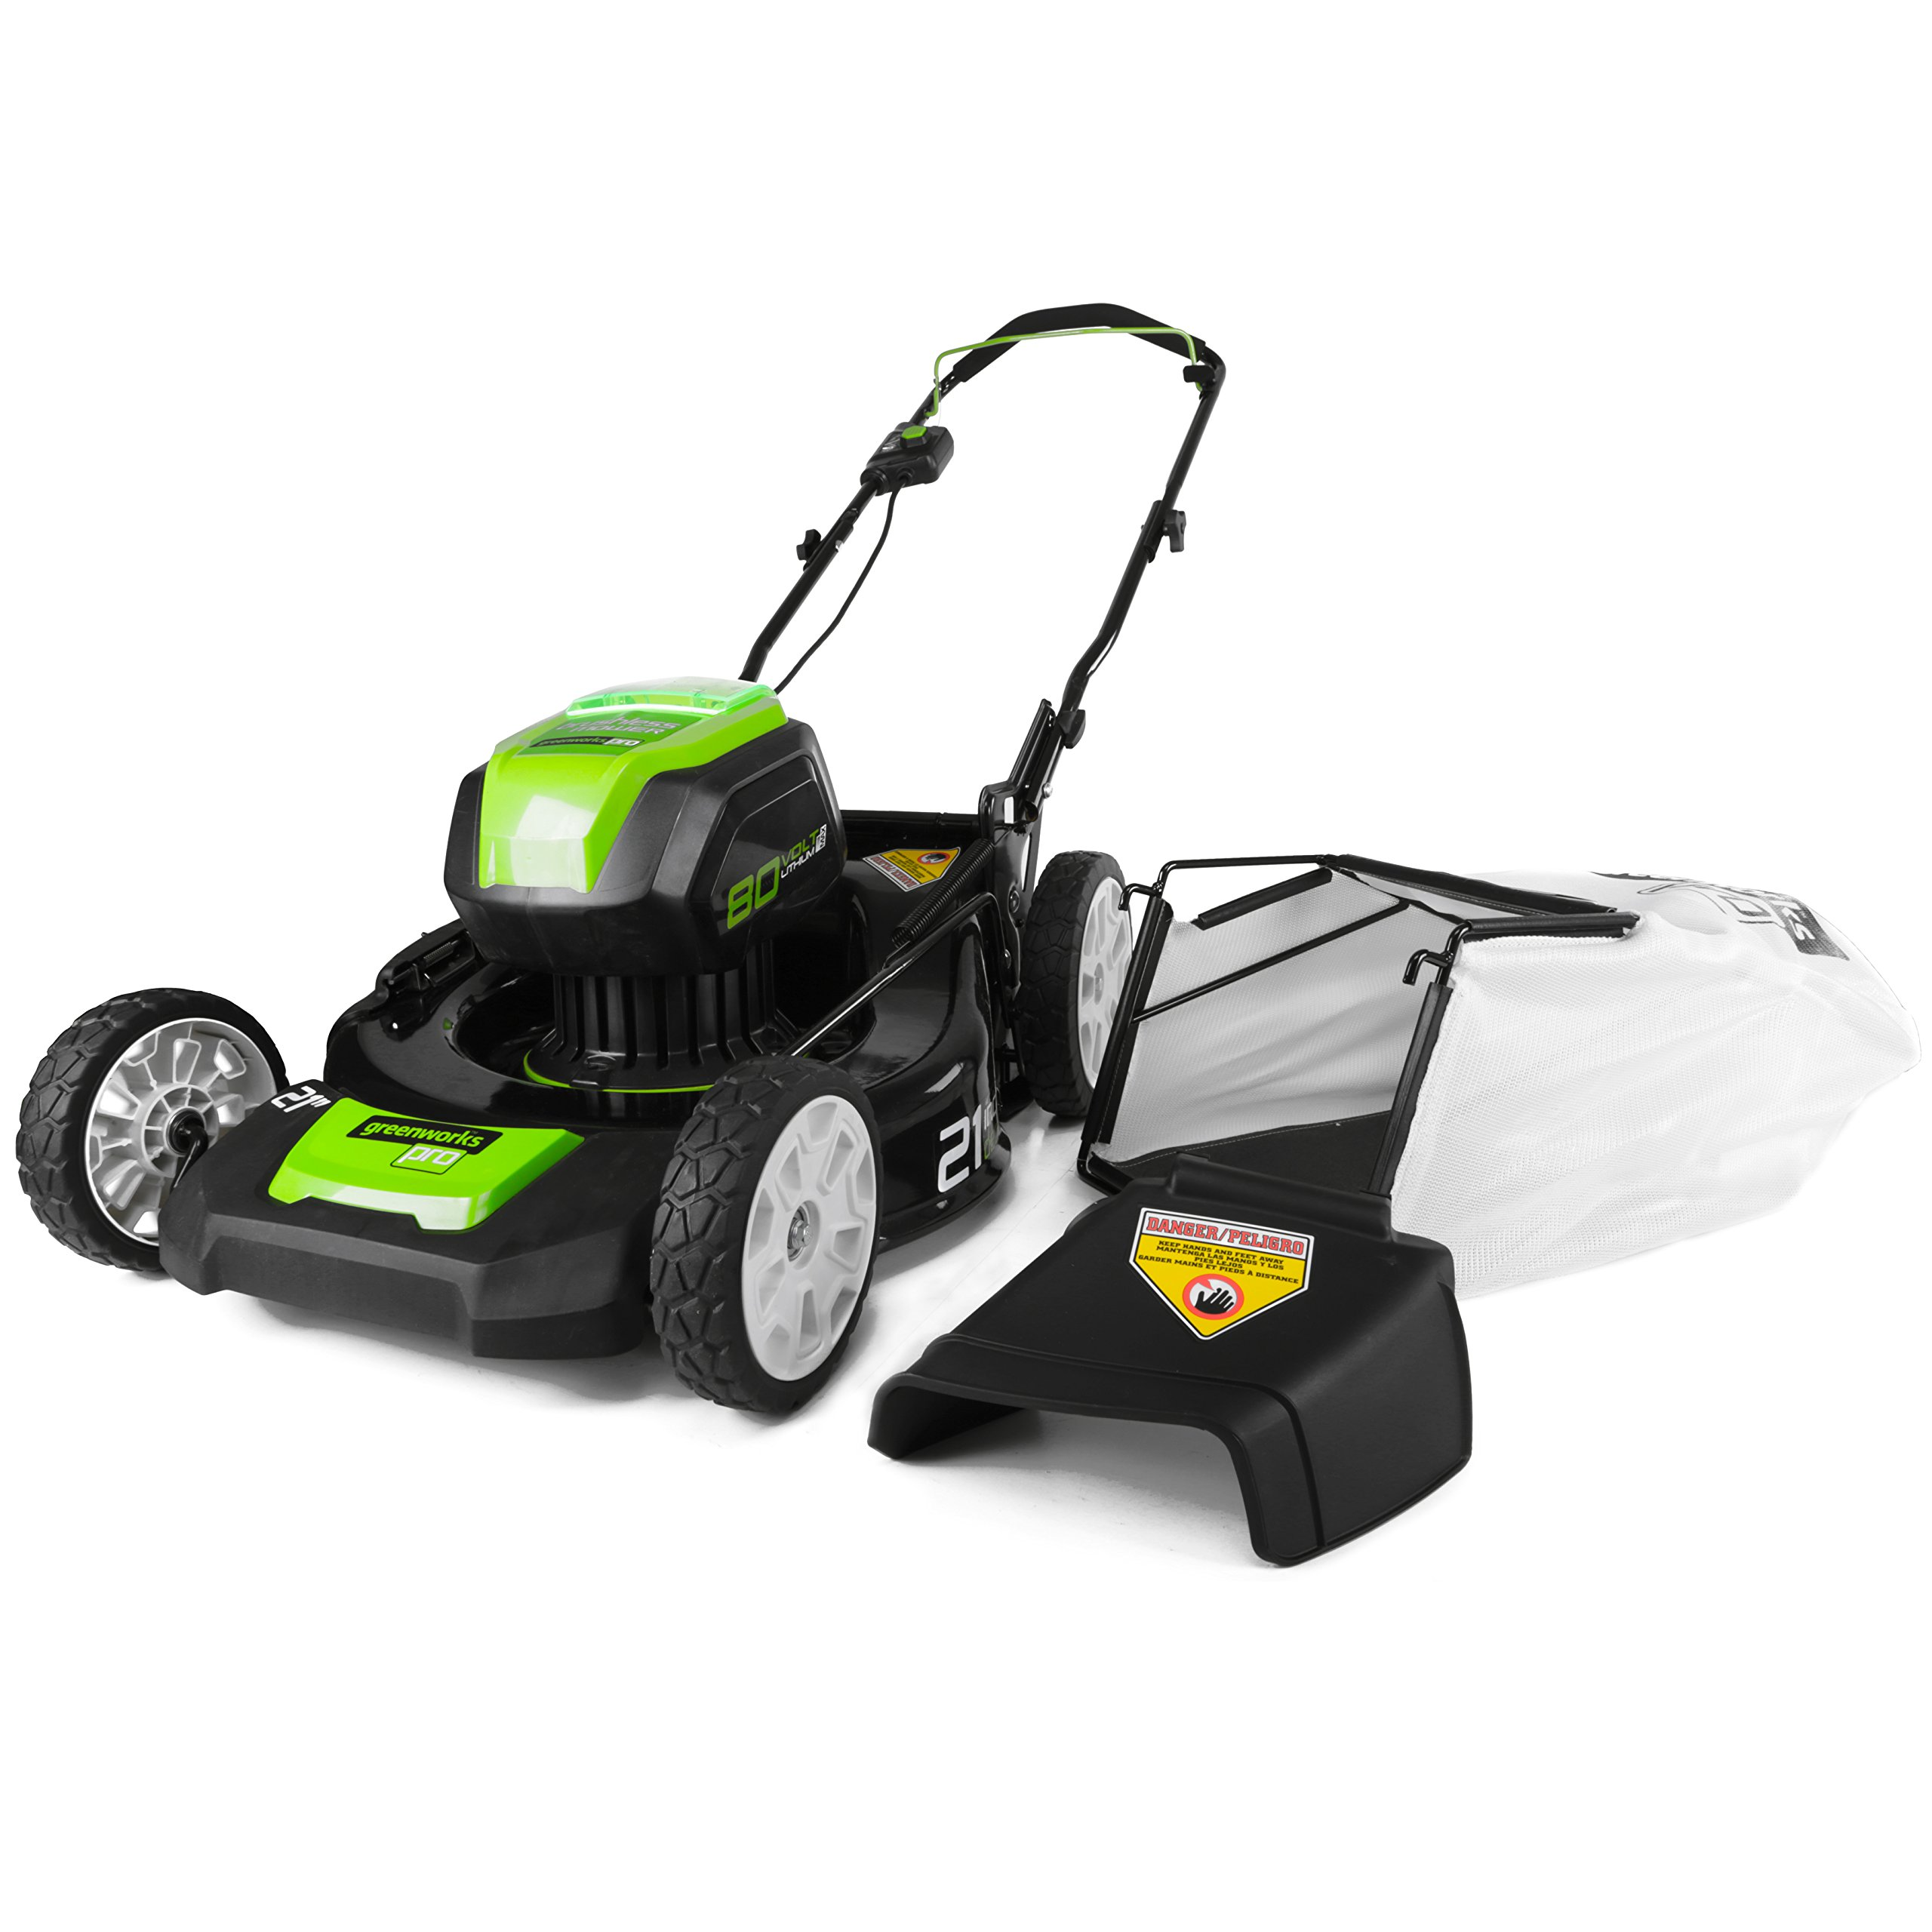 Greenworks Pro 80V 21-Inch Cordless Lawn Mower, Battery Not Included, GLM801600 by Greenworks